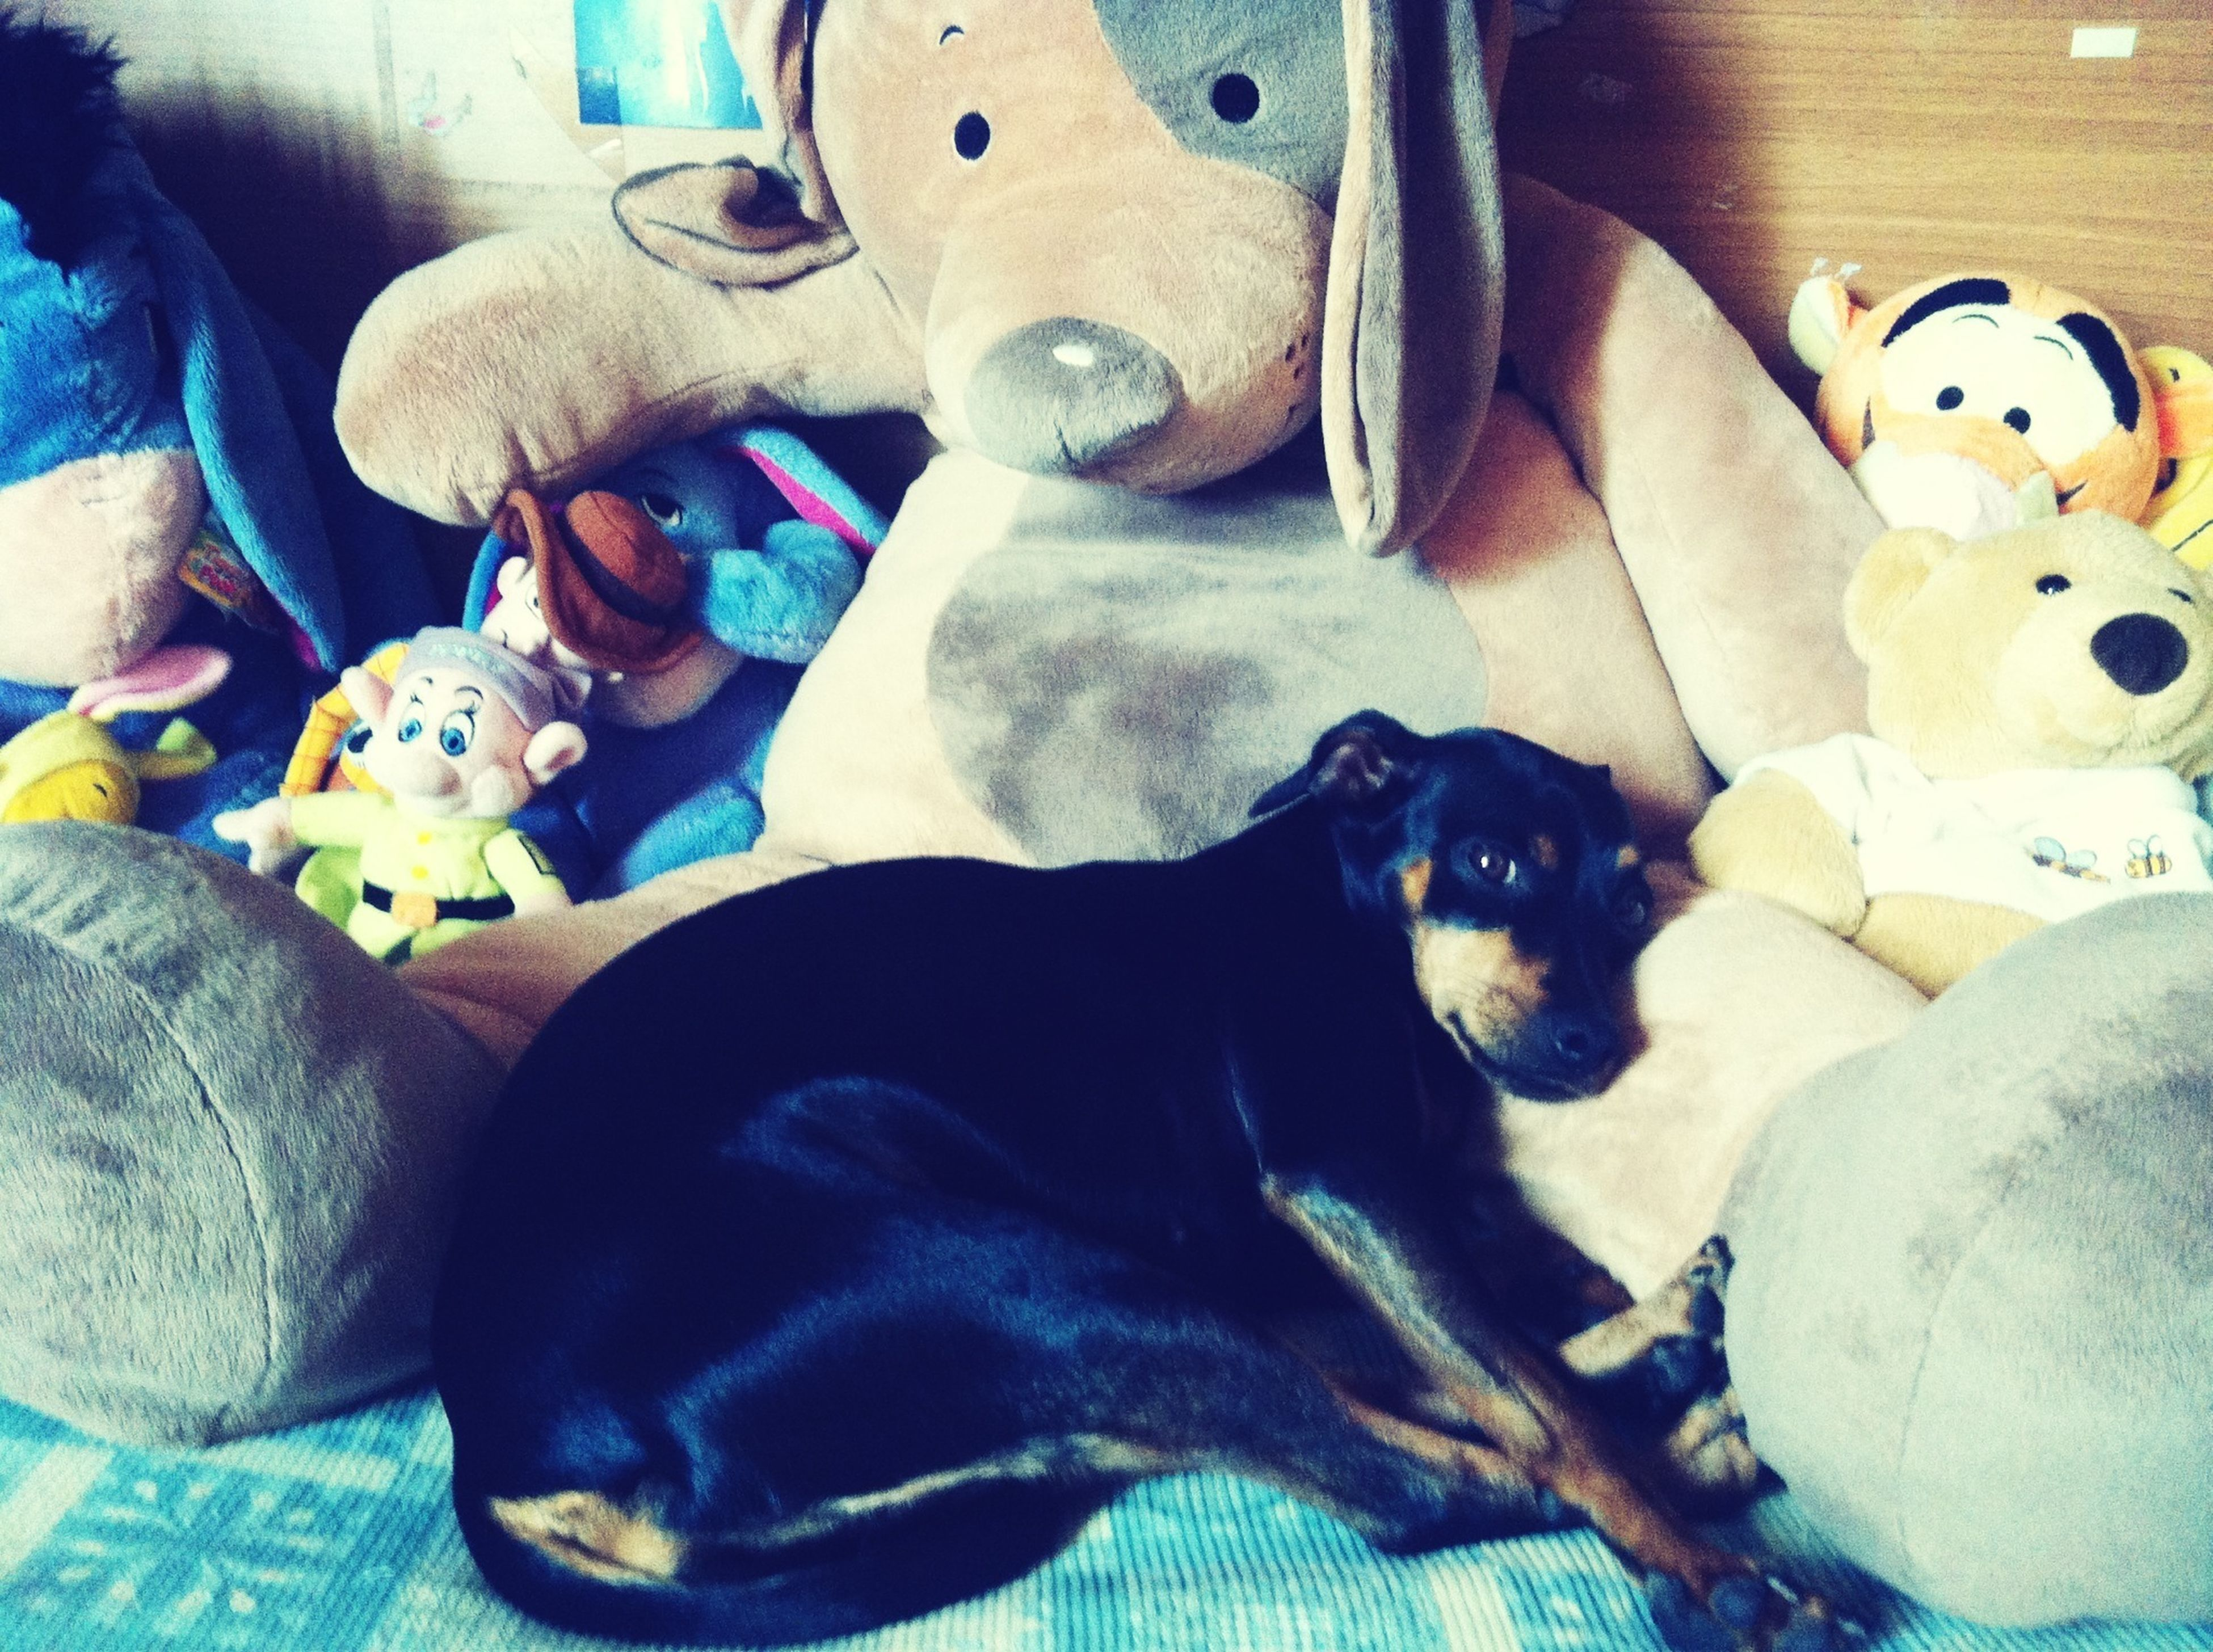 indoors, domestic animals, pets, animal themes, mammal, dog, toy, relaxation, high angle view, one animal, sofa, stuffed toy, animal representation, sitting, home interior, no people, close-up, lying down, bed, variation